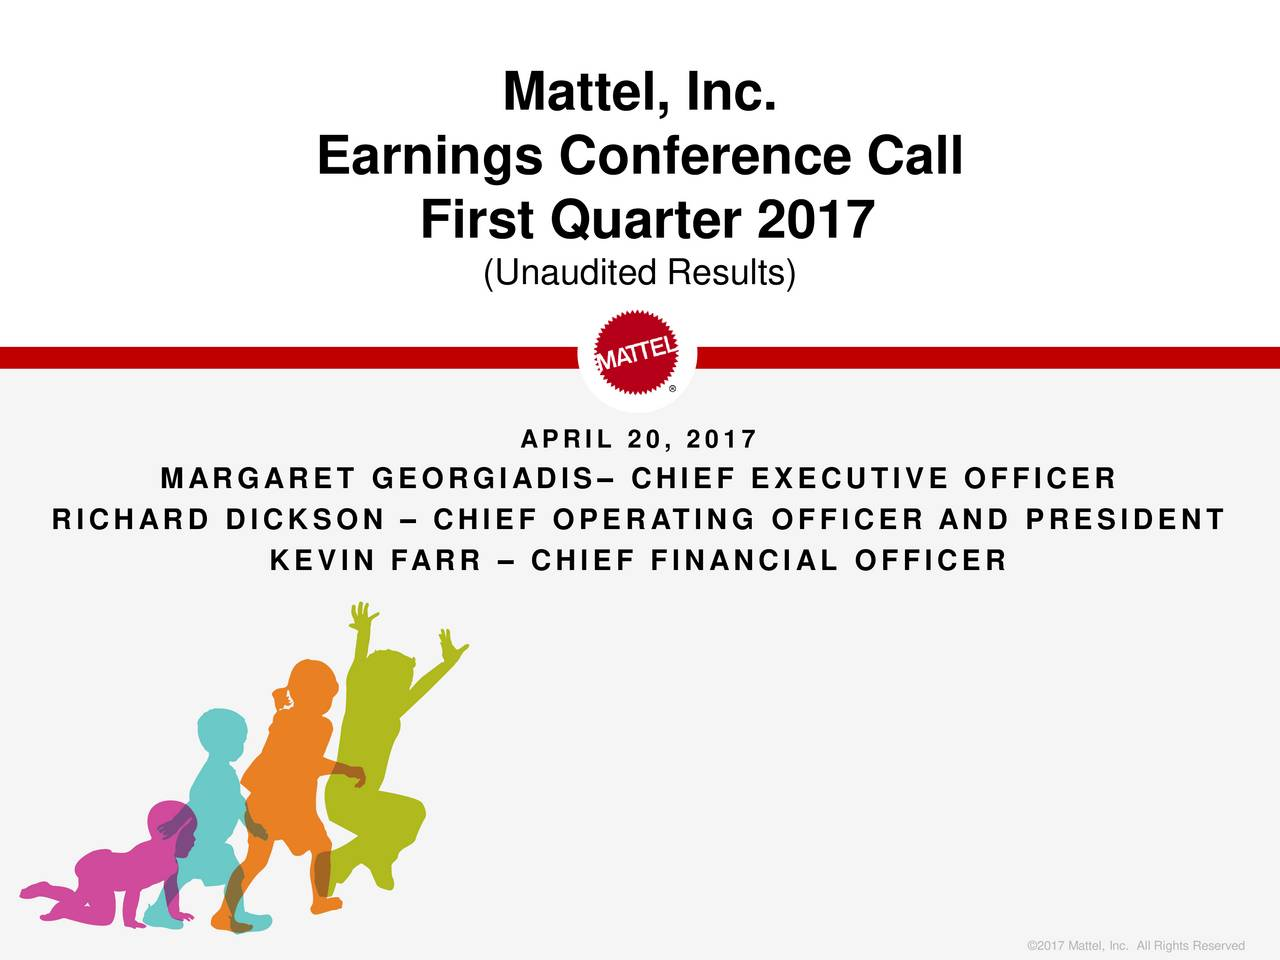 Earnings Conference Call First Quarter 2017 (Unaudited Results) APRIL 20, 2017 MARGARET GEORGIADIS CHIEF EXECUTIVE OFFICER RICHARD DICKSON  CHIEF OPERATING OFFICER AND PRESIDENT KEVIN FARR  CHIEF FINANCIAL OFFICER